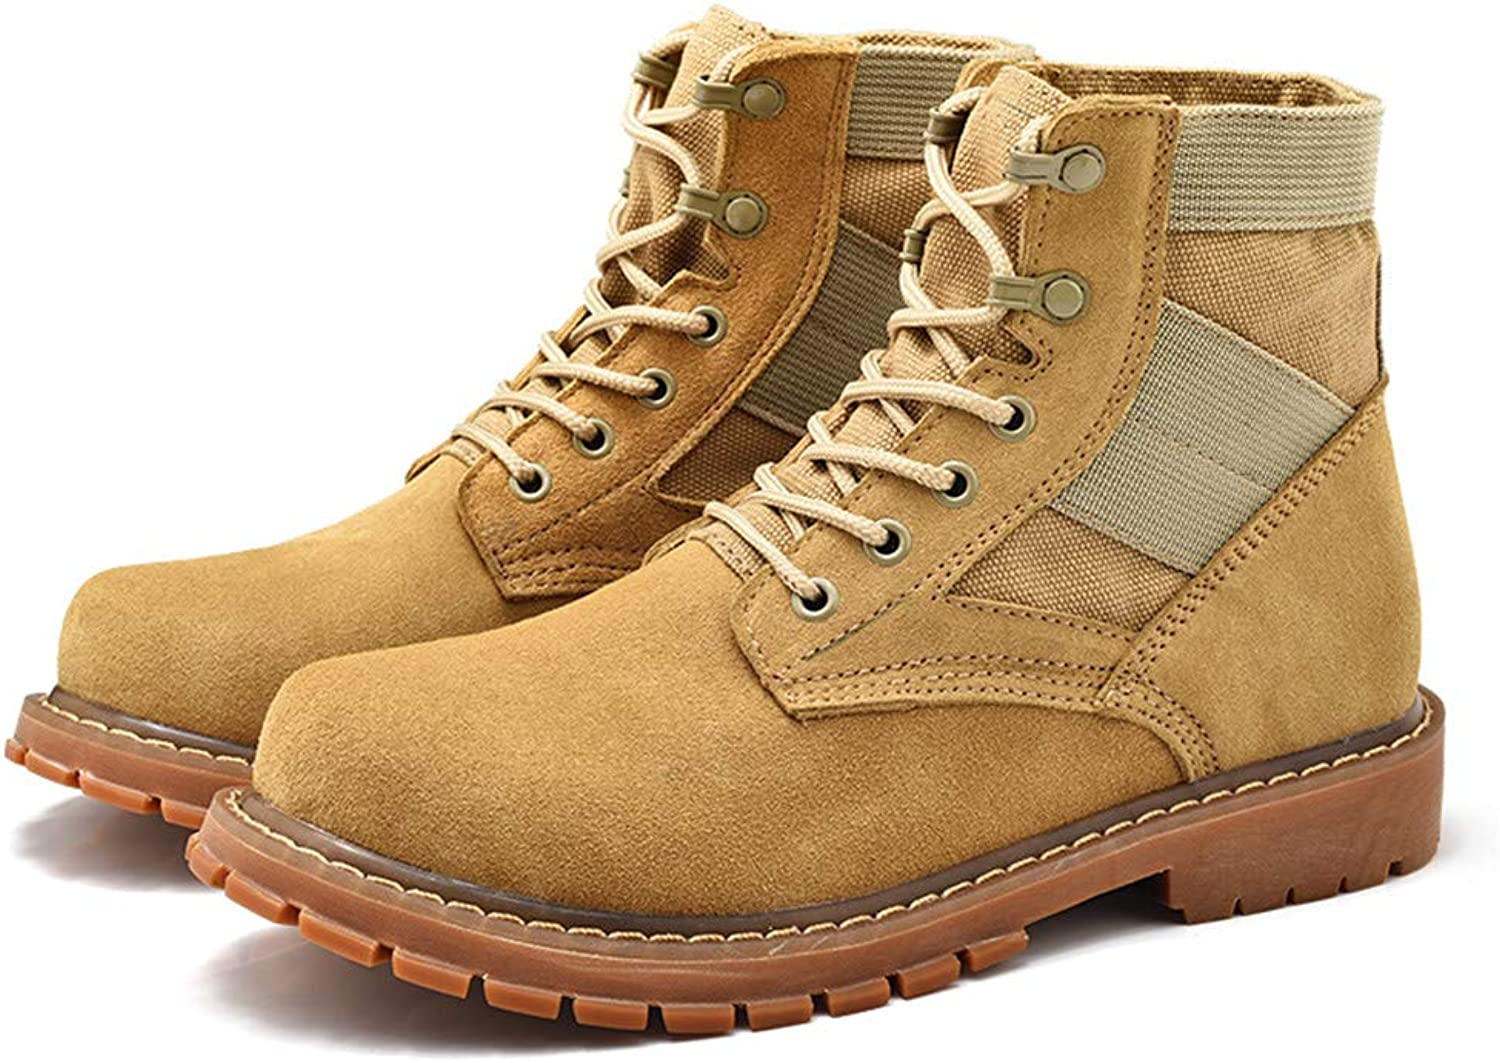 Easy Go Shopping Men's Ankle Boots Casual Personality OX Leather Large Size Suede High Top Work shoes Cricket shoes